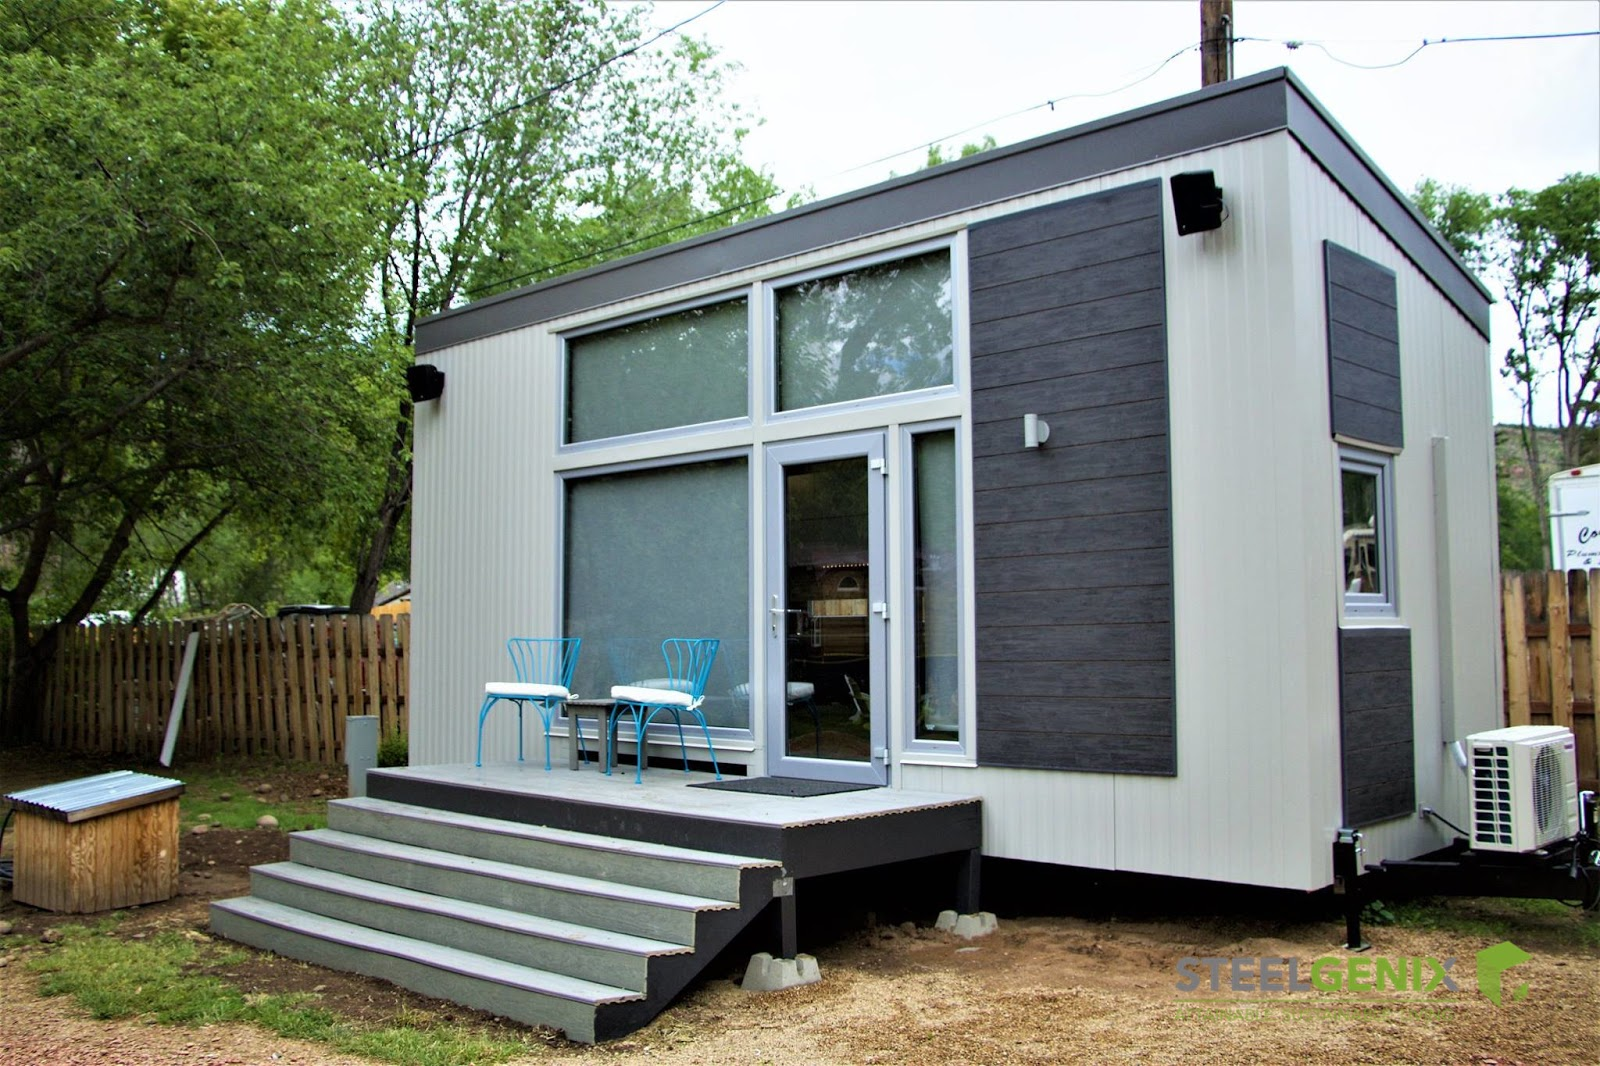 Tiny Home Designs: TINY HOUSE TOWN: The Steelhaus From Steelgenix